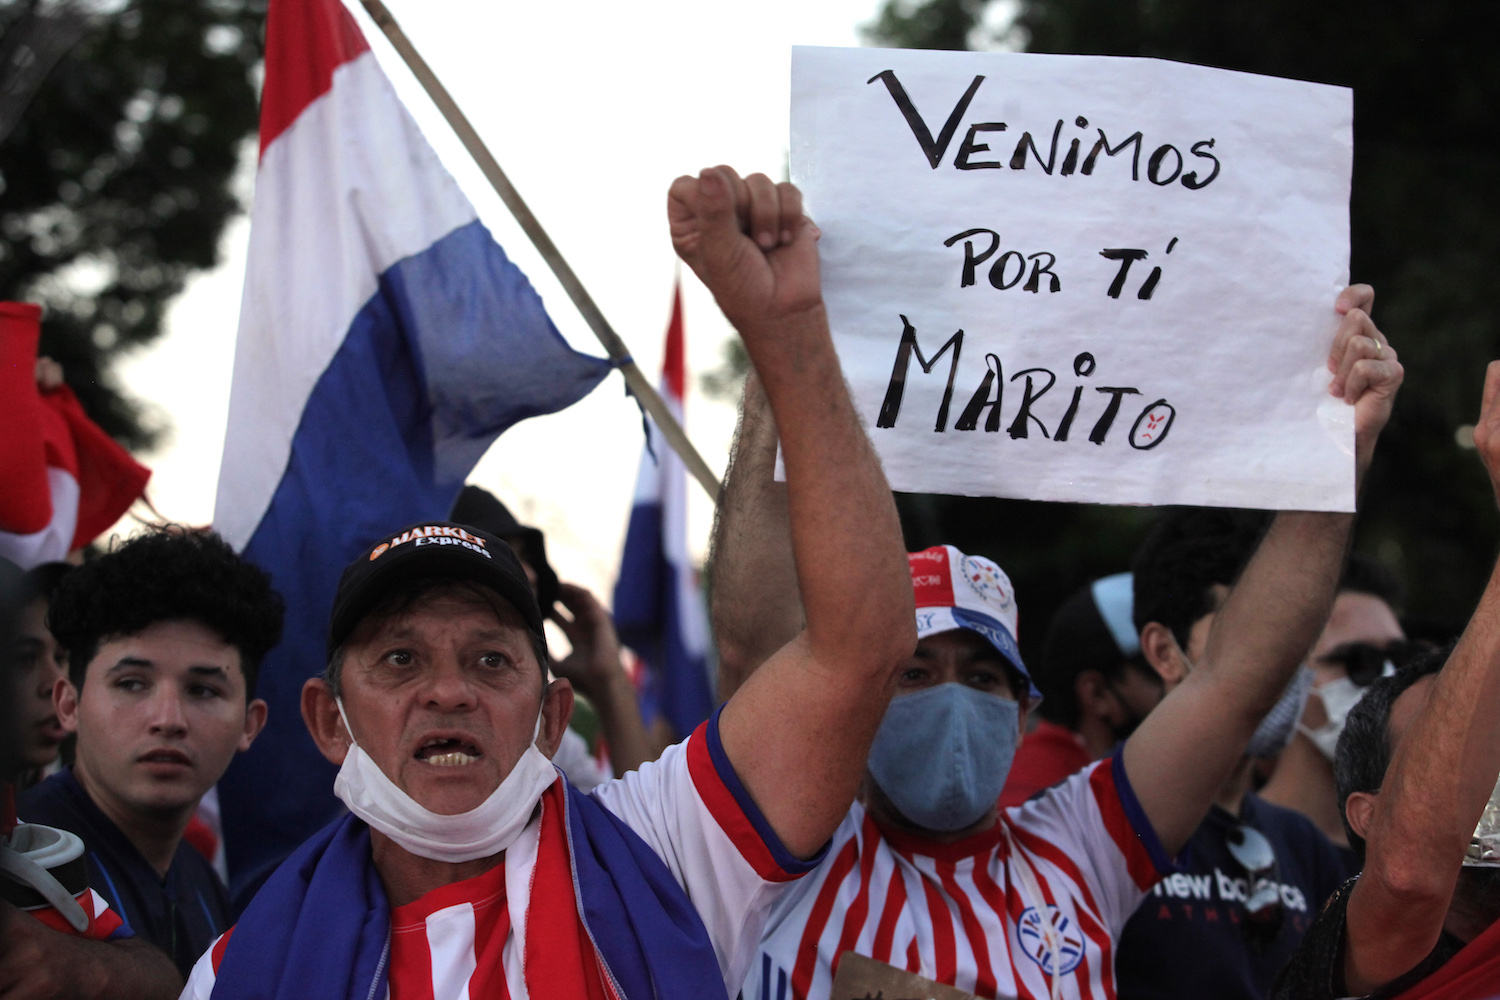 """A demonstrator holds a sign that reads """"We come for you, Marito"""" during a protest against President Mario Abdo Benitez's handling of the pandemic in Asuncion, Paraguay on March 7, 2021."""